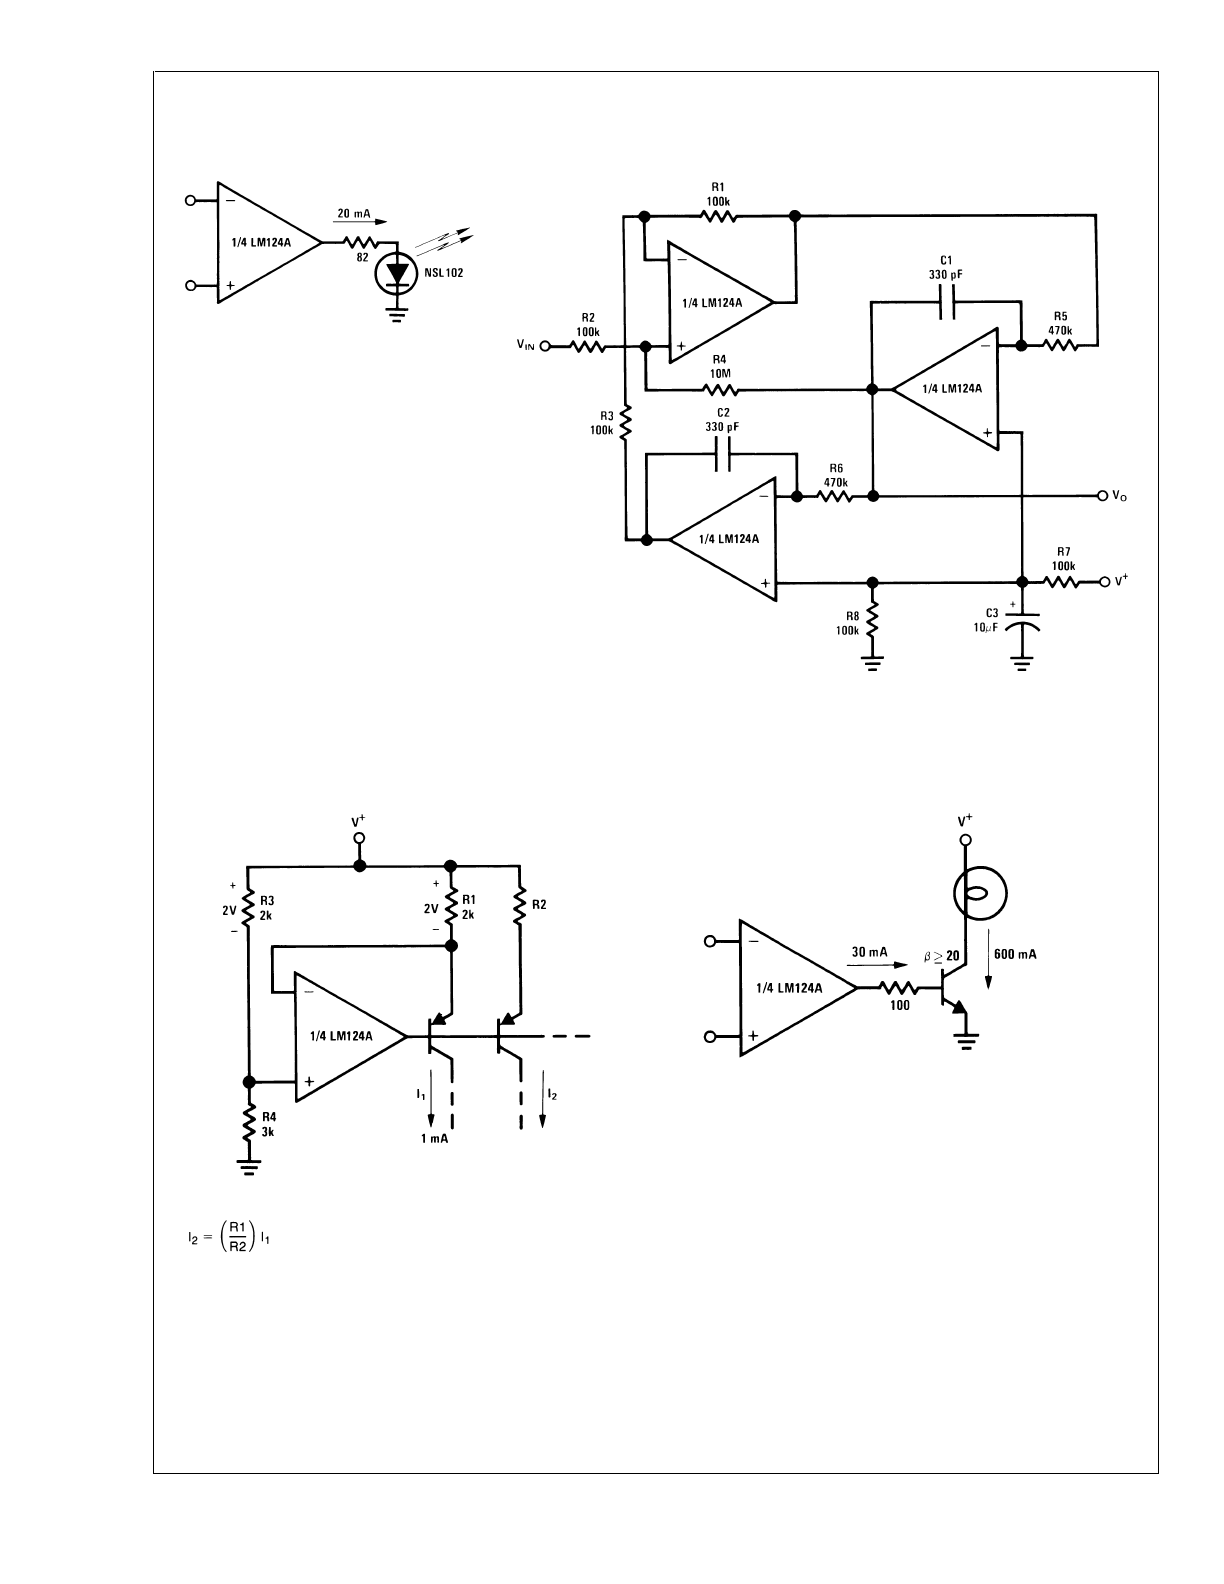 Lm124 Lm224 Lm2902 Lm324 Datasheet Lookup 1khz Bandpass Filter Electronic Circuits Schematics Diagram Background Image